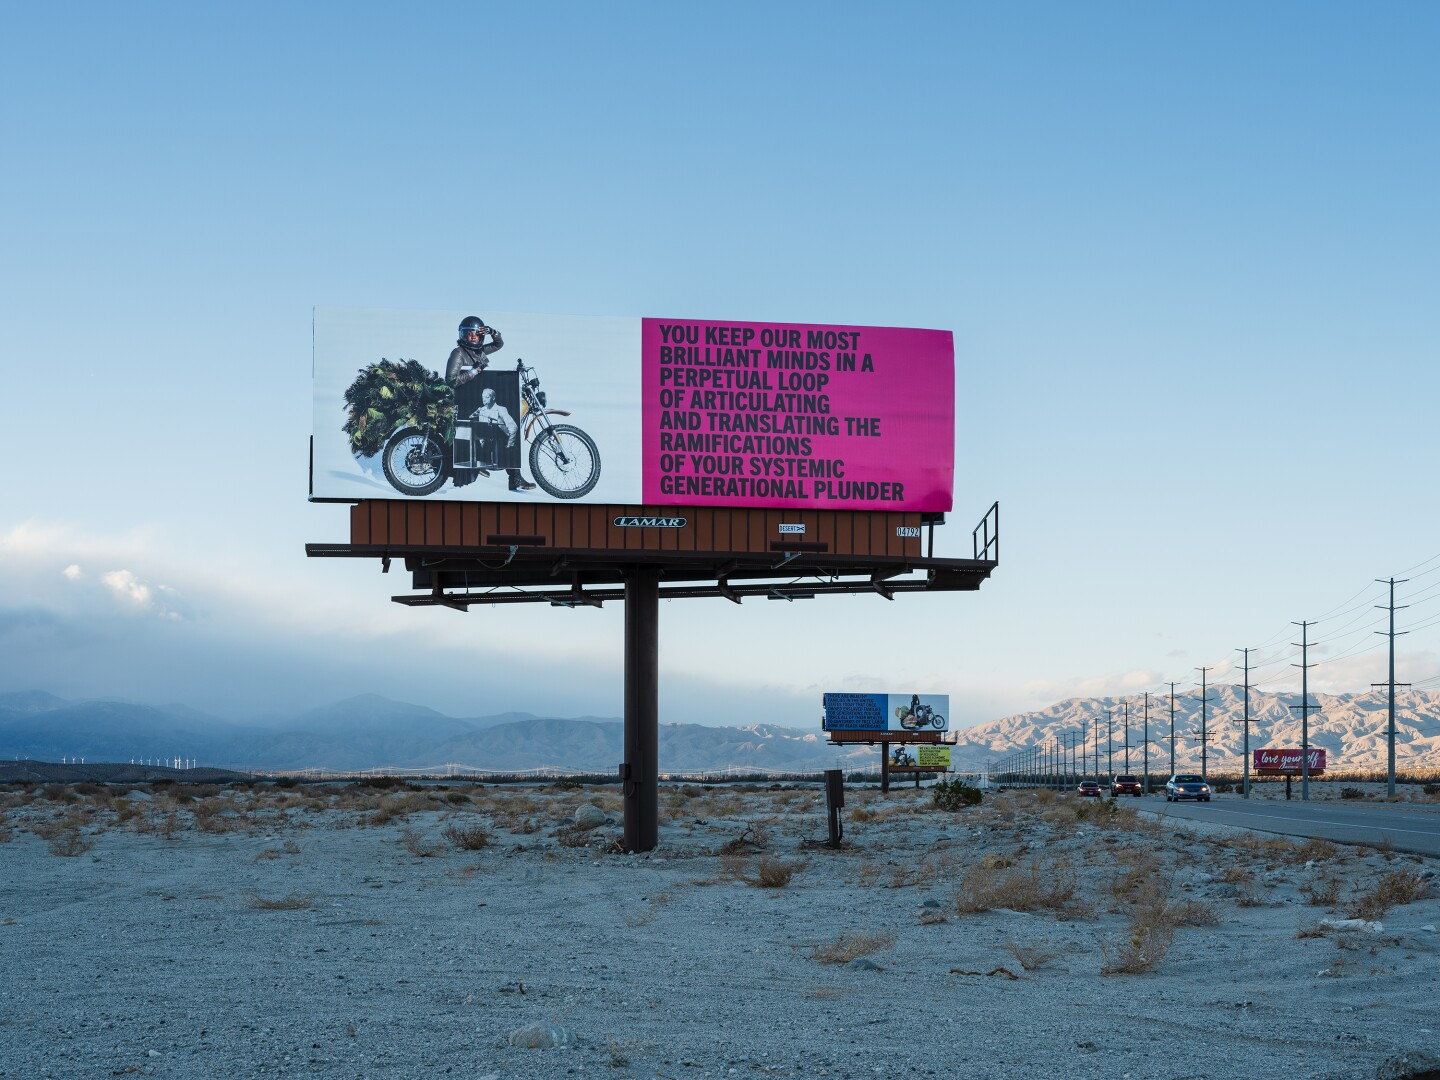 """Simmons' billboards stand along the Gene Autry Trail. The one photographed reads, """"You keep our most brilliant minds in a perpetual loop of articulating and translating the ramifications of your systemic generational plunder."""""""